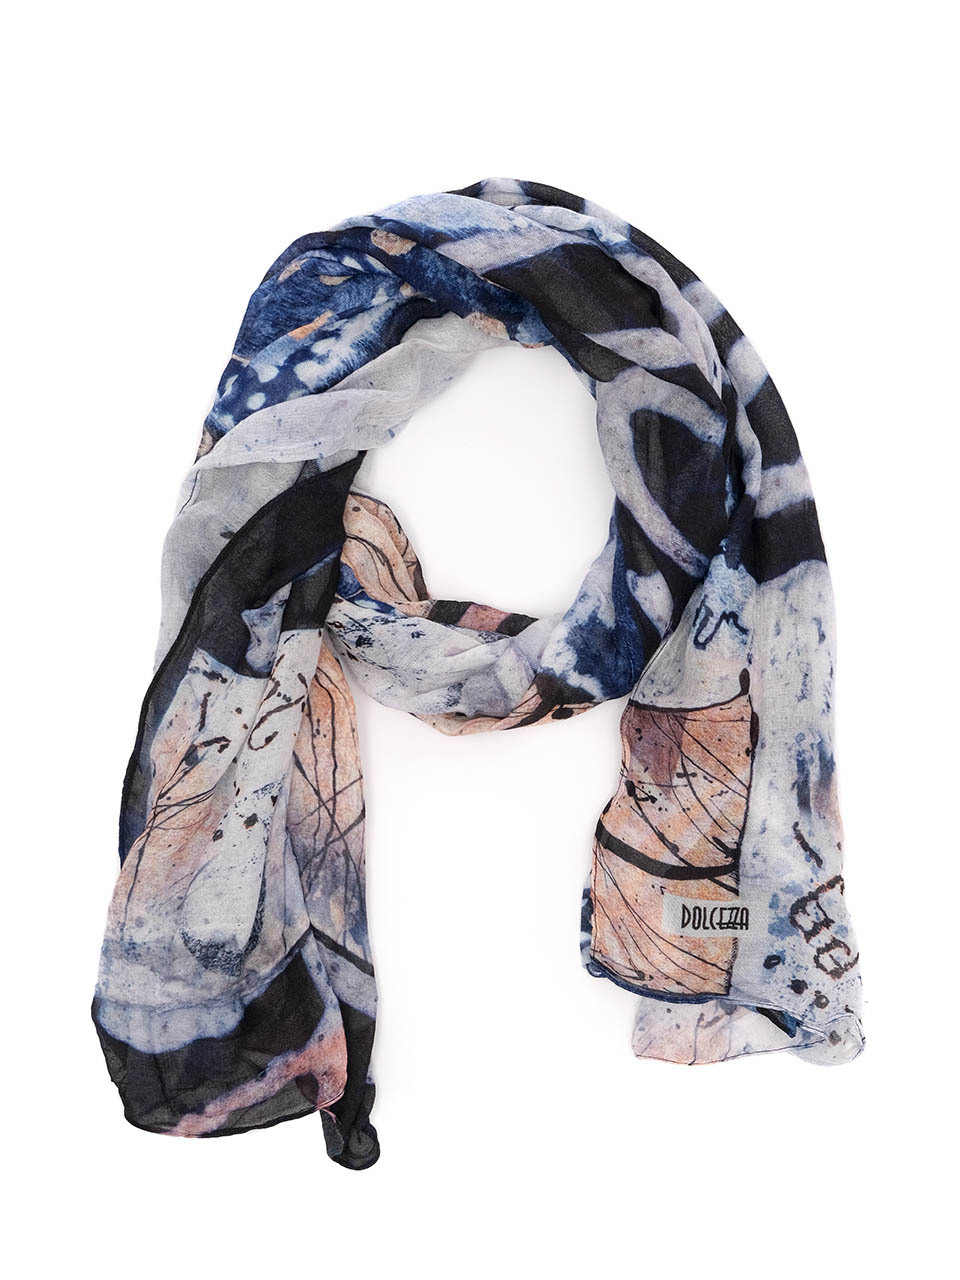 Simply Art Dolcezza: Papers In Color Abstract Art Scarf (1 Left!)